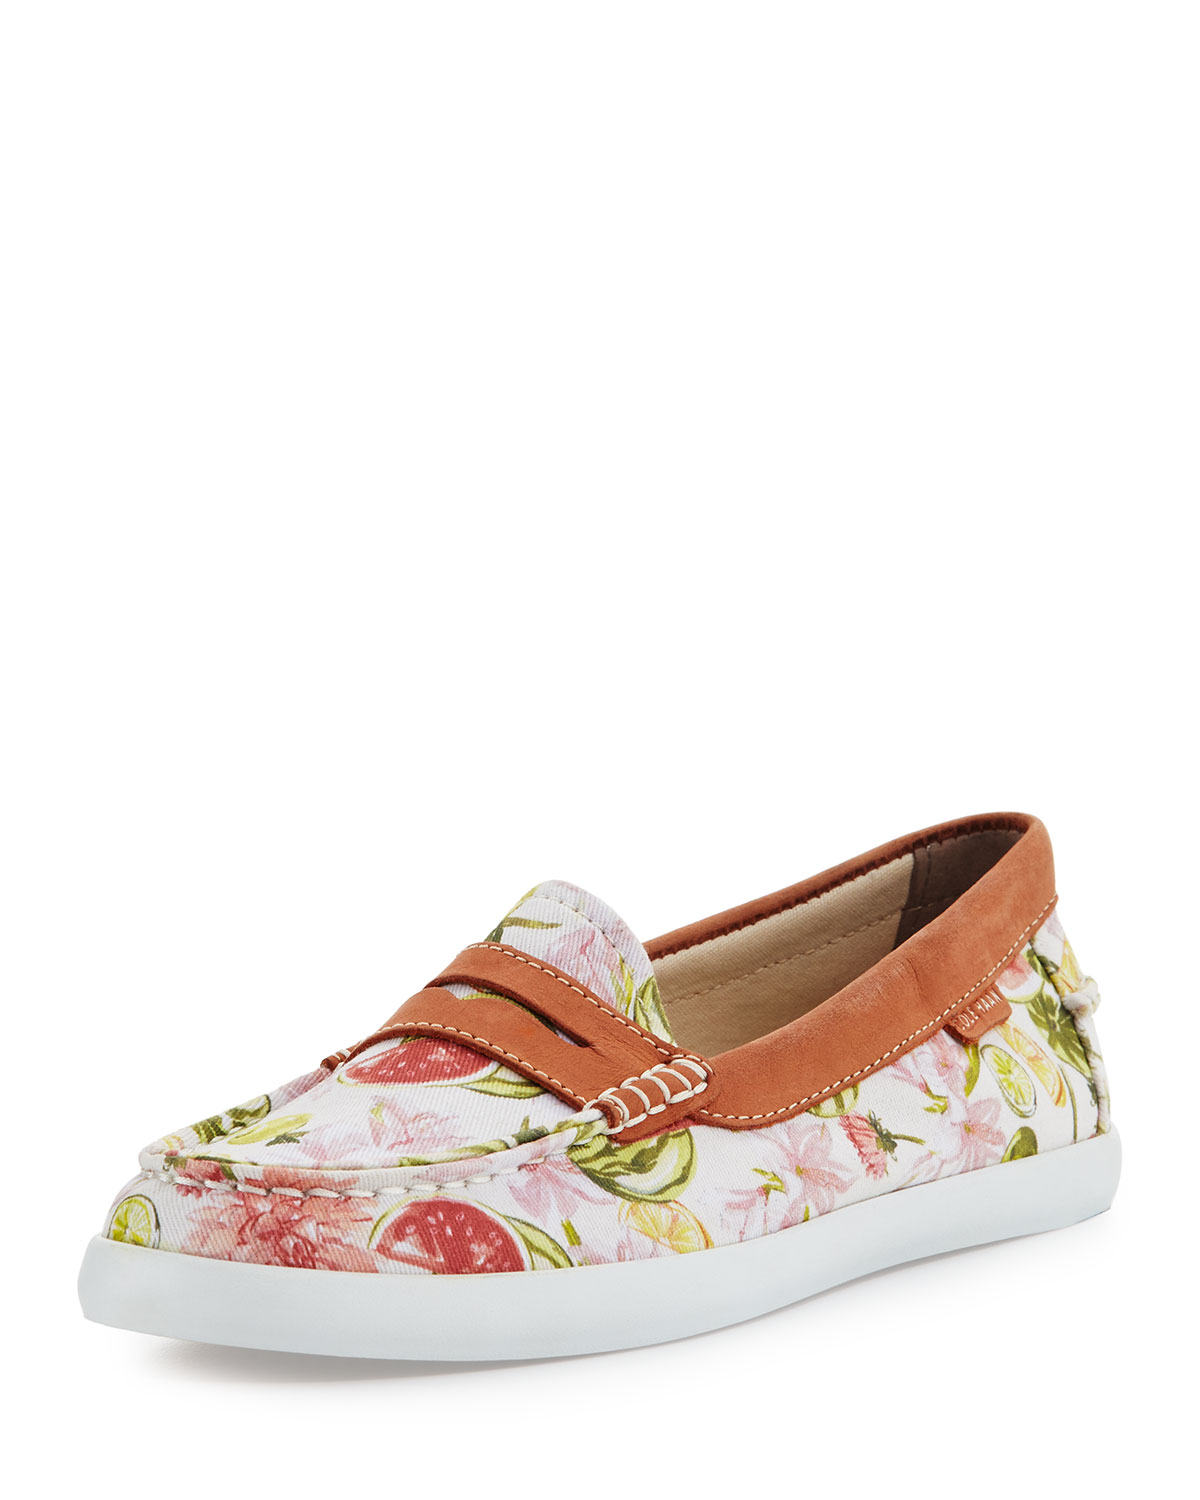 Cole Haan Pinch Weekender Floral Loafer White Neiman Marcus